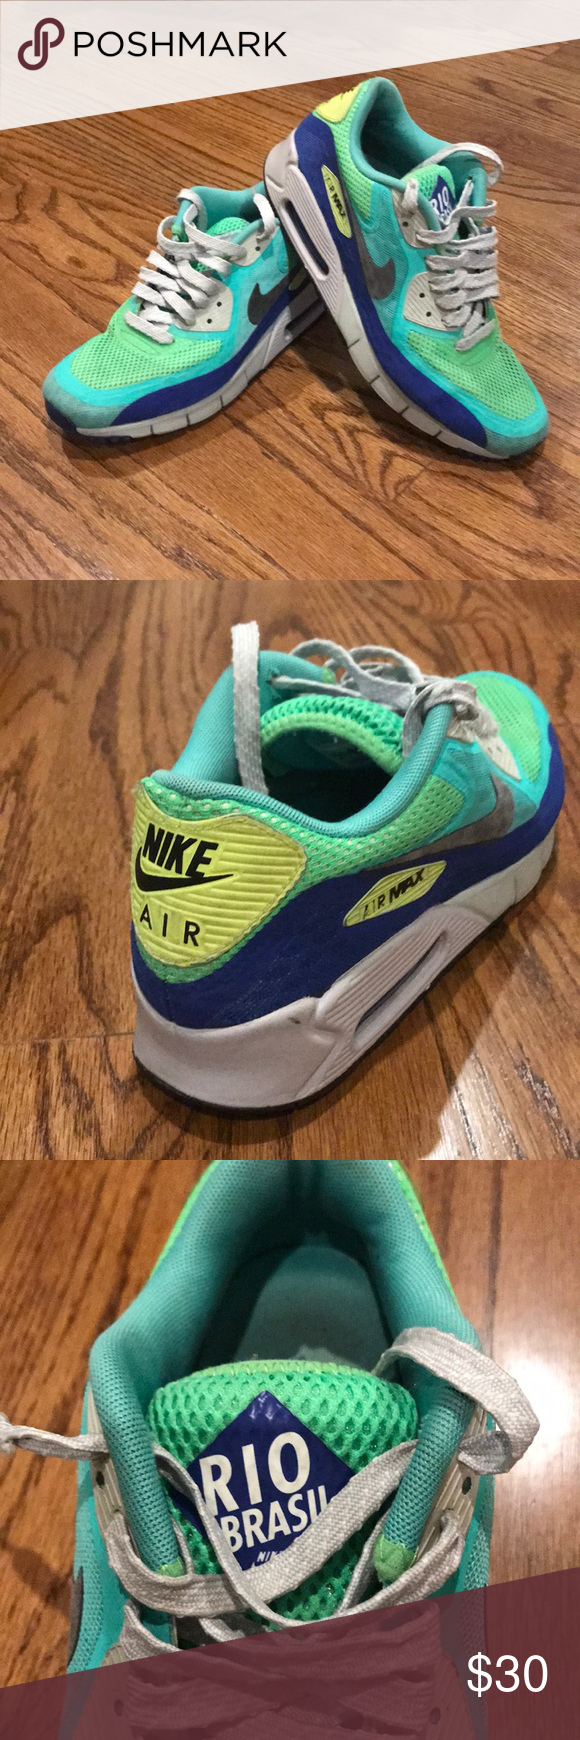 """buy online 71bf6 b138c Men s Nike Air Max 90 Breathe """"Rio Brasil"""" Men s Air Max Sneakers. Used but  still in good condition. Vibrant green, blue and yellow colors."""